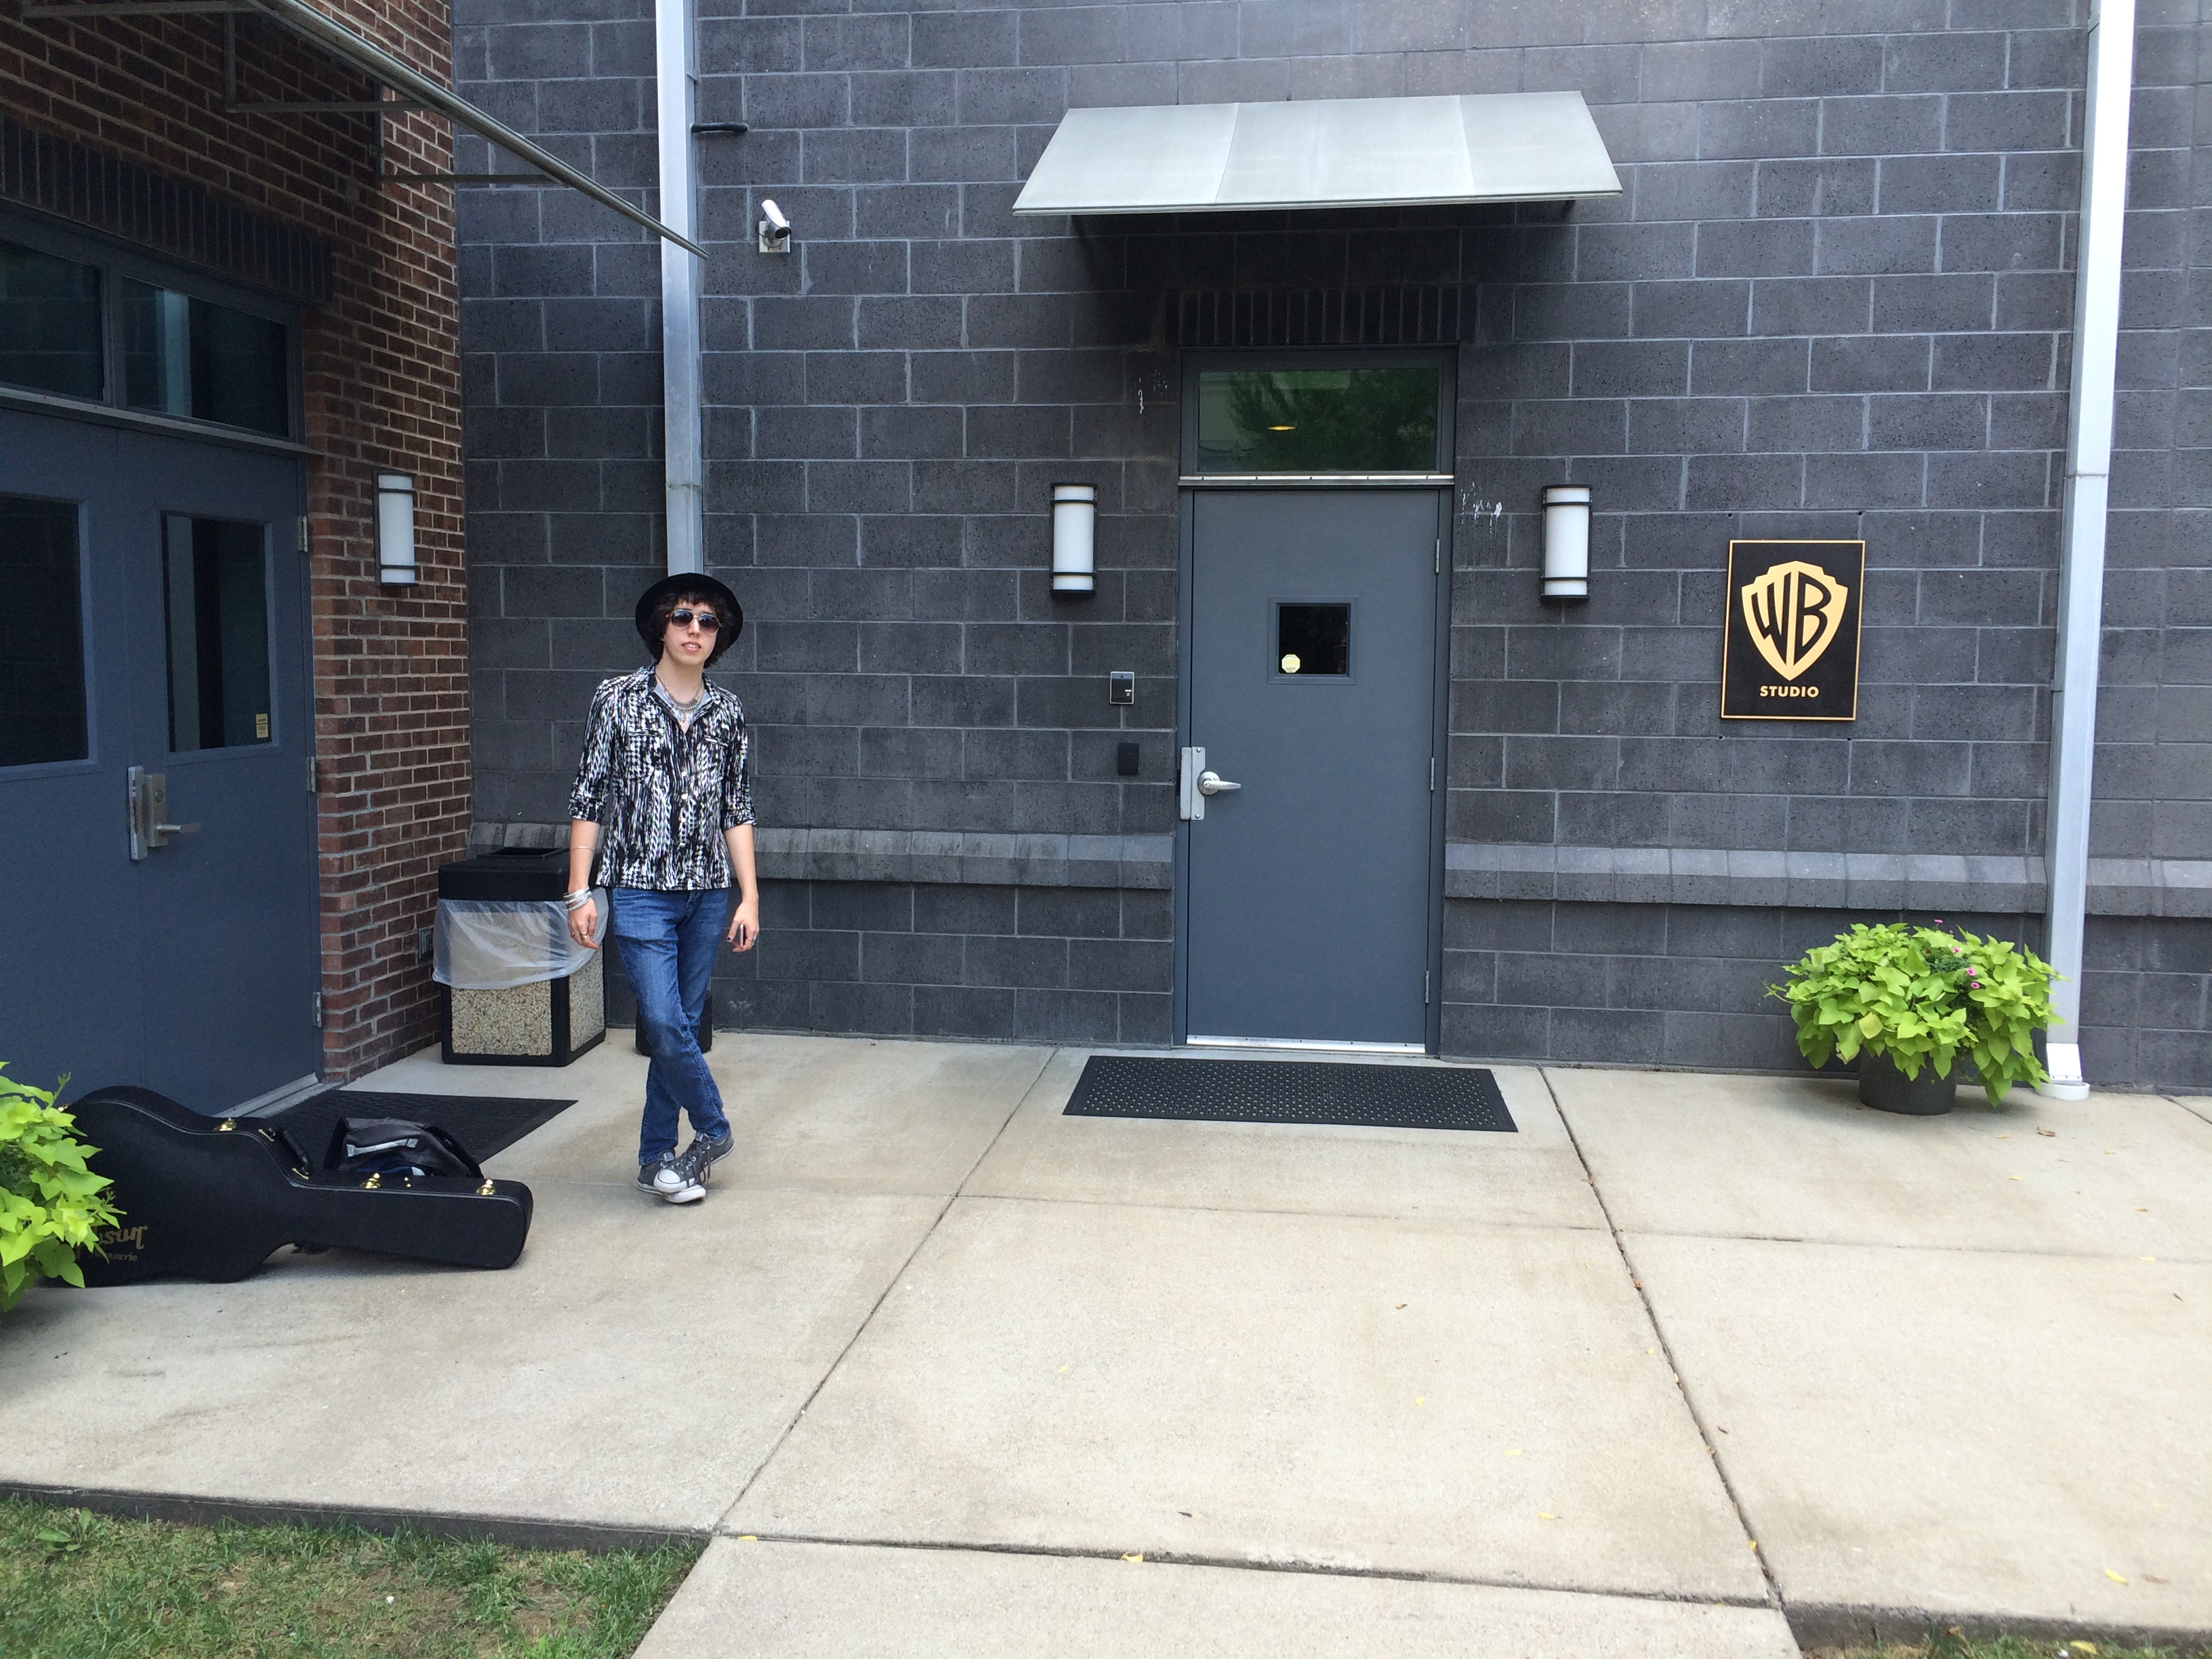 At Warner Bros Studio